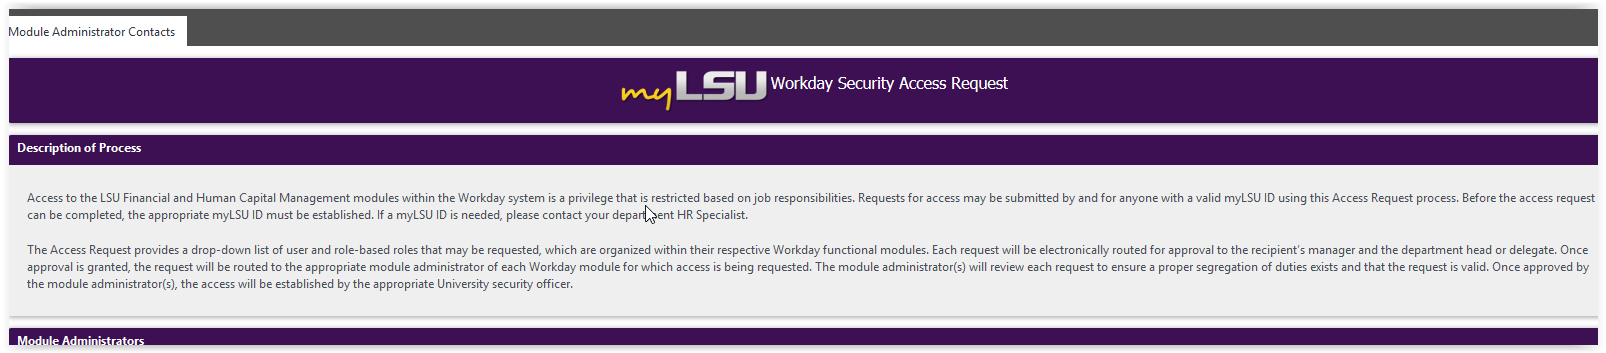 myLSU Portal: Workday Security Access Request - GROK Knowledge Base